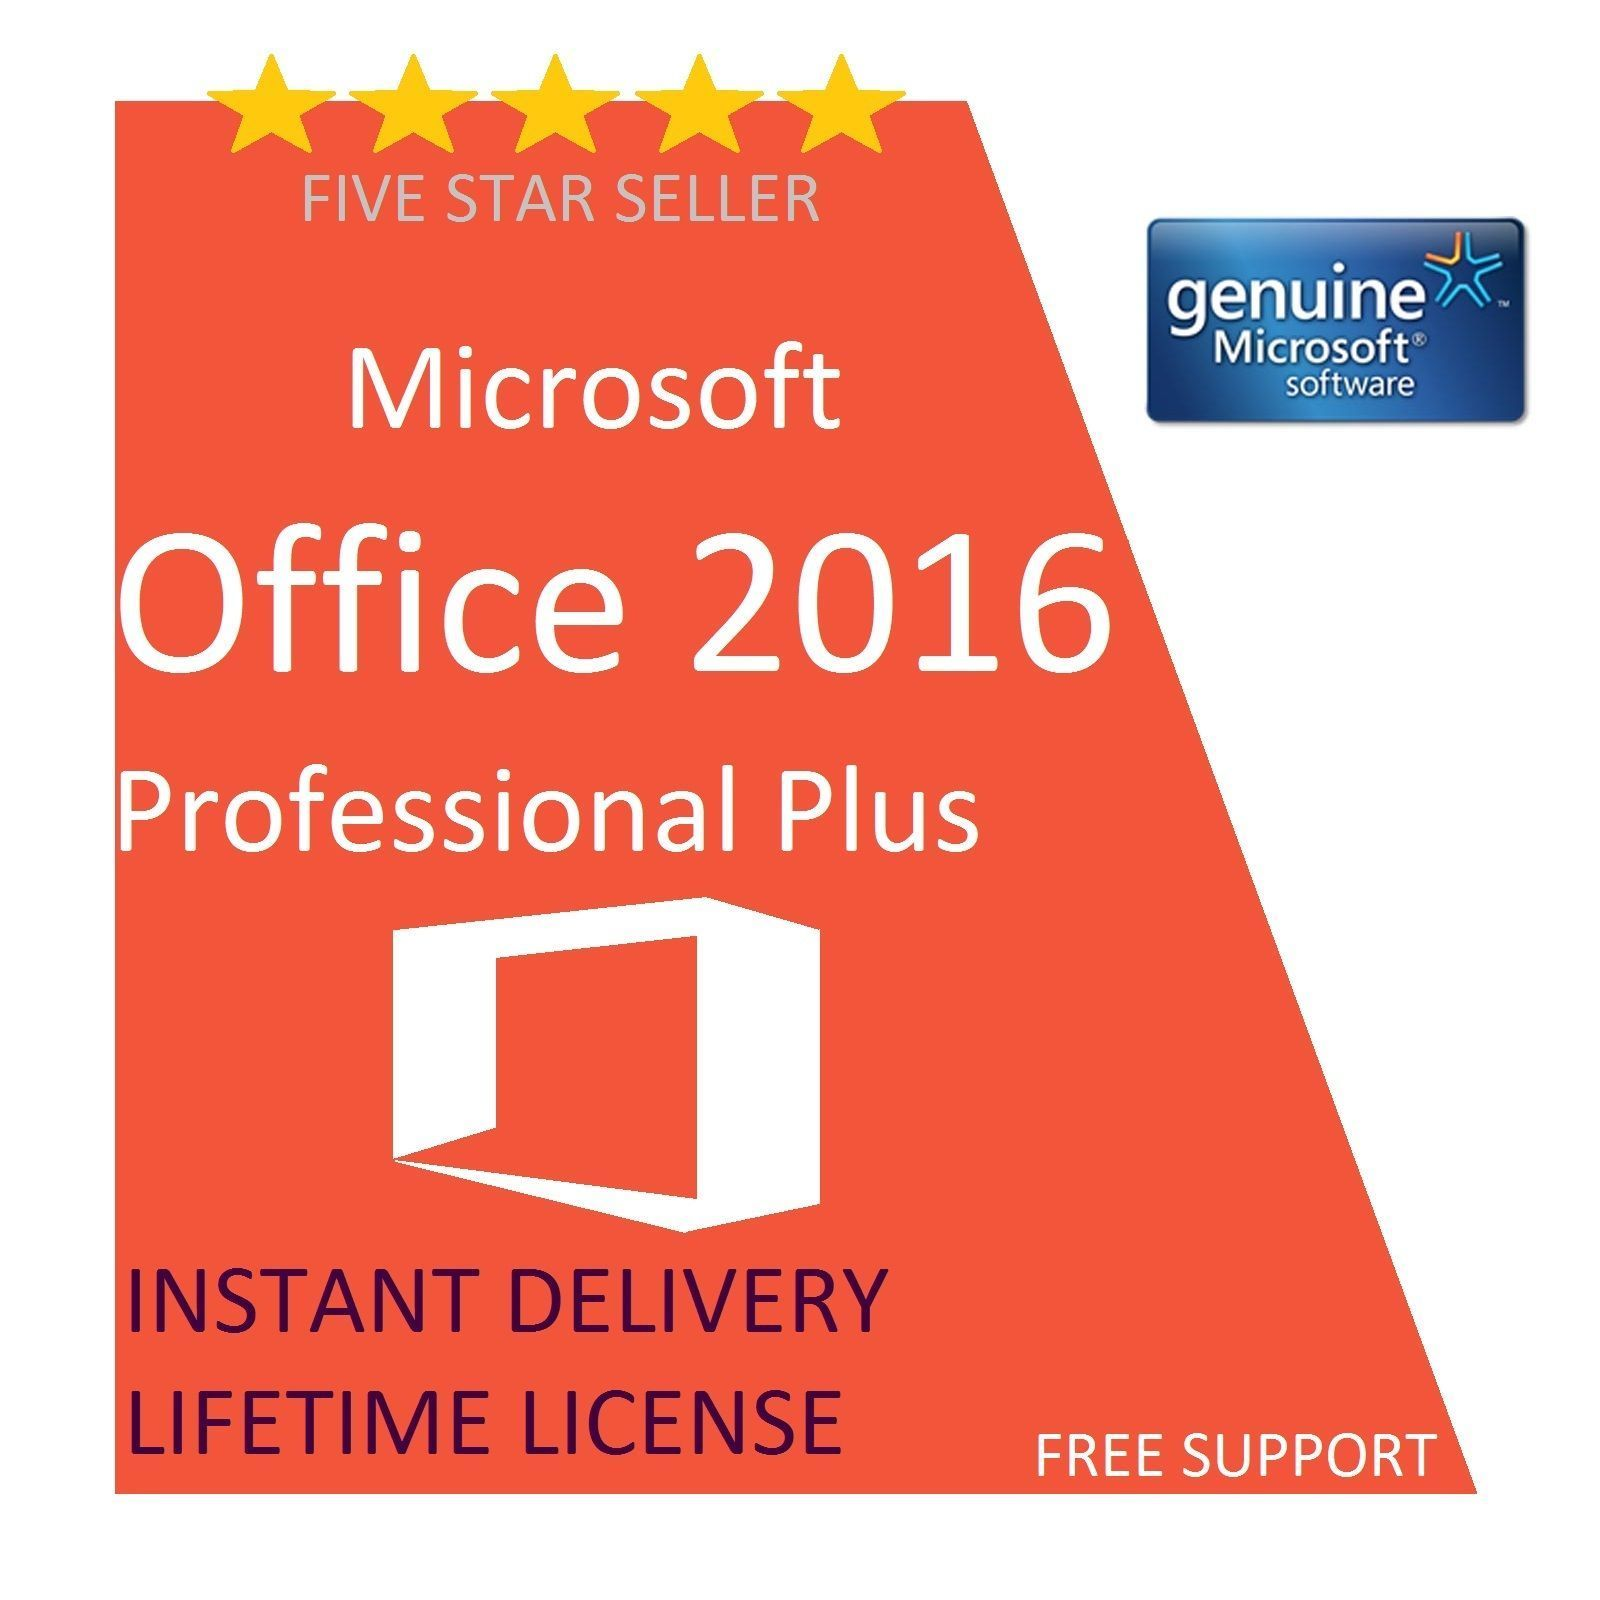 microsoft office 2016 professional &plus for windows product key&download link